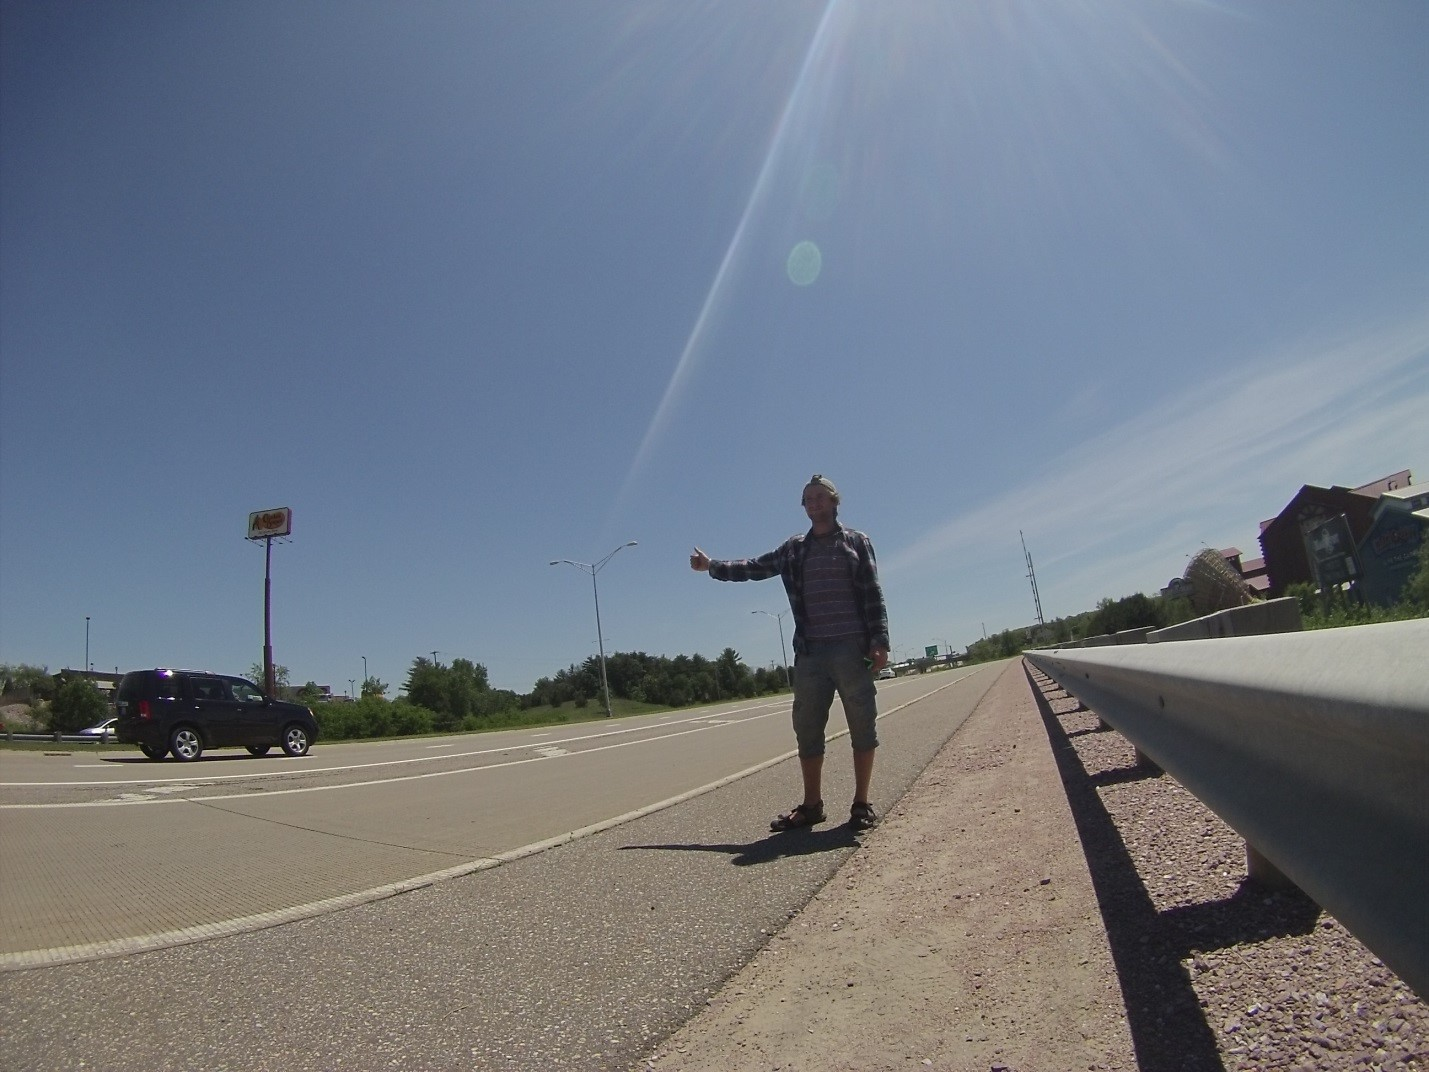 Hitchhiking in Wisconsin Dells, WI. Photo by author.